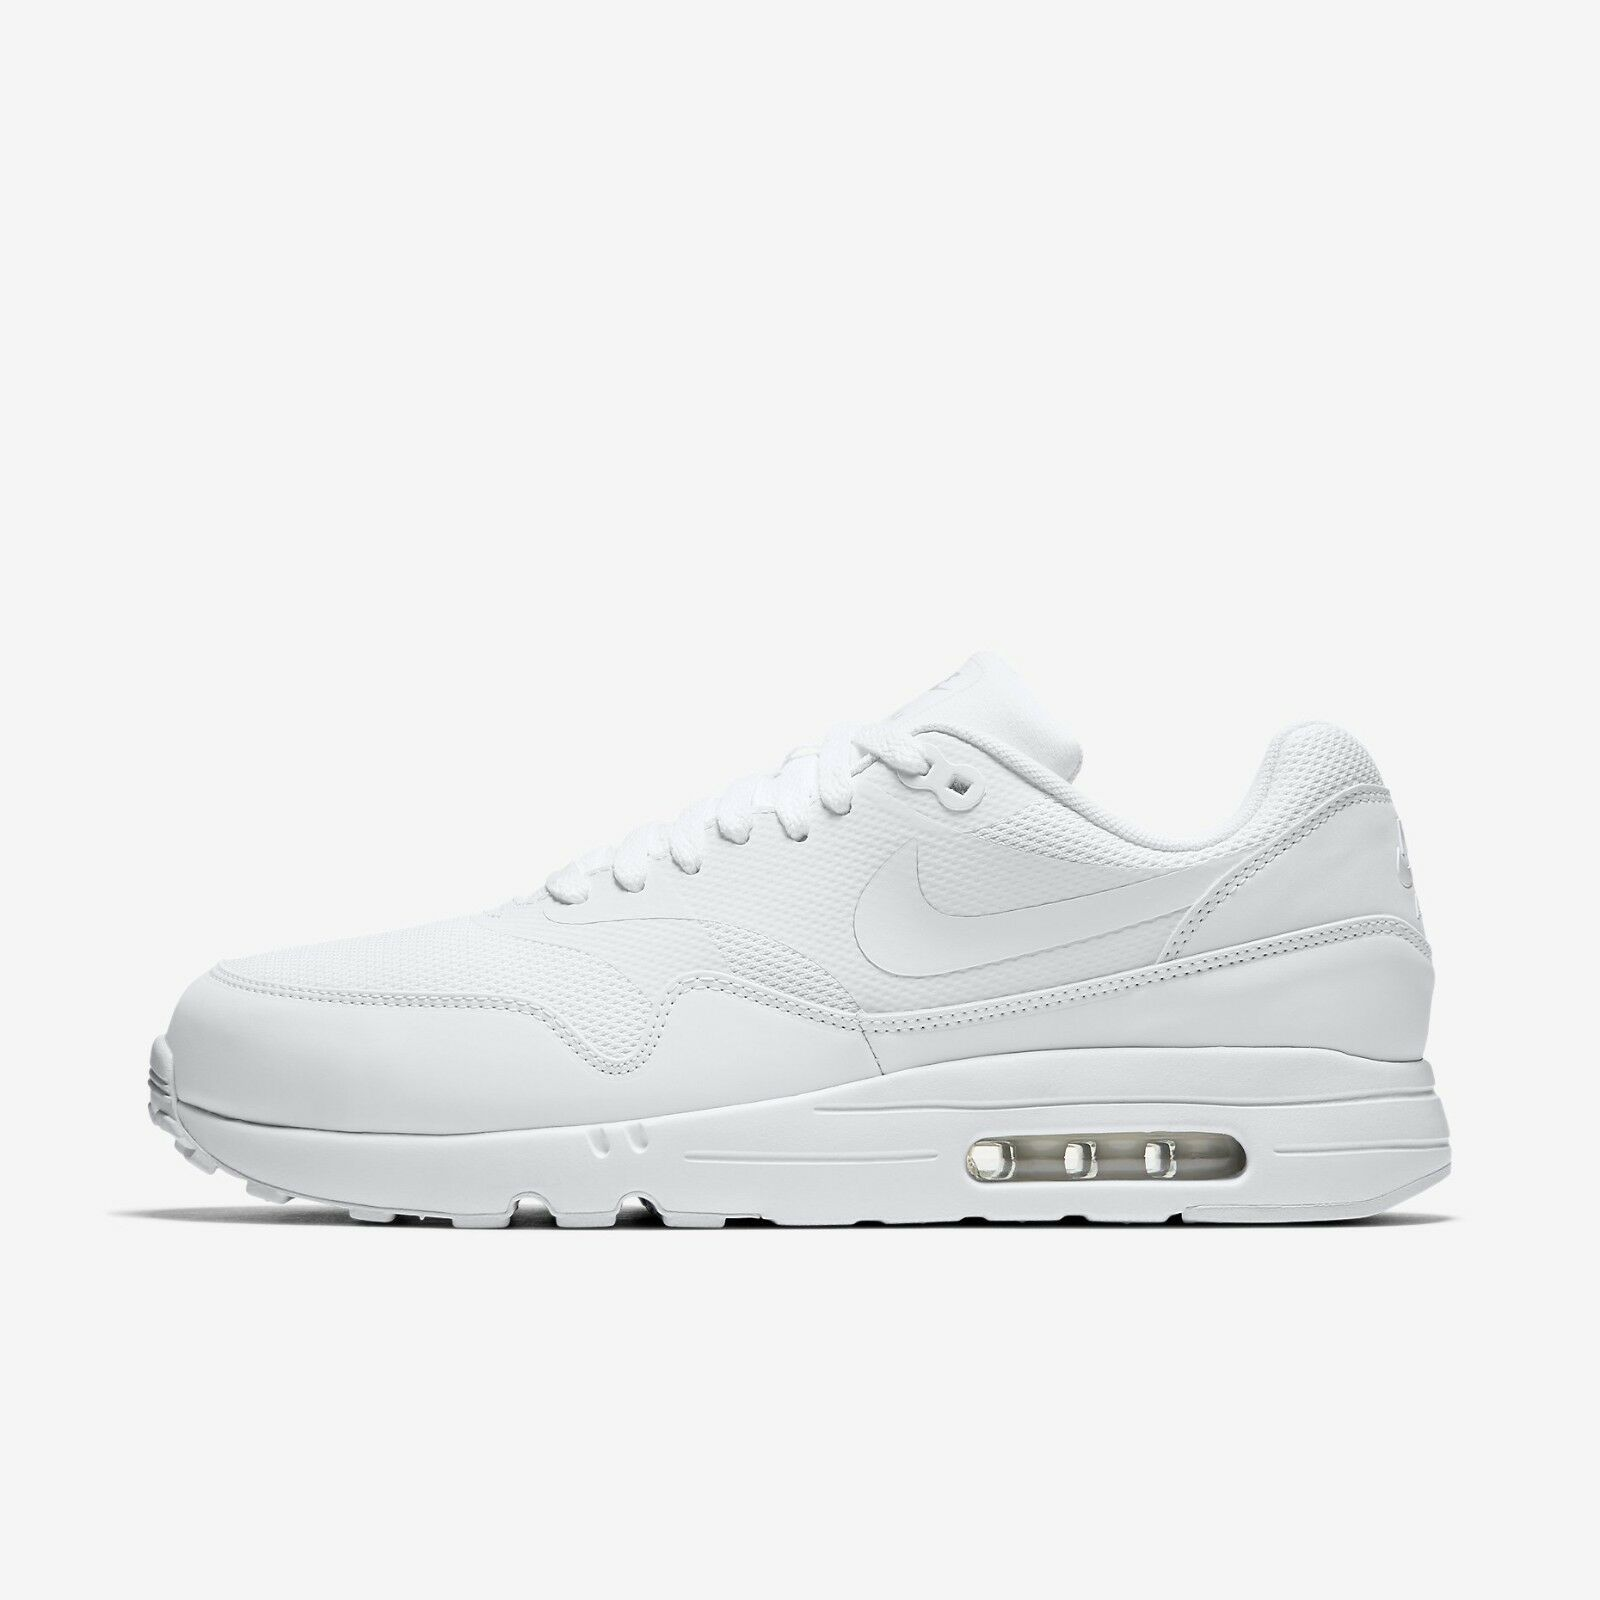 designer fashion 4f988 f64b4 NIKE AIR MAX 1 ULTRA 2.0 ESSENTIAL 875679 100 100 100 TRIPLE ALL WHITE PURE